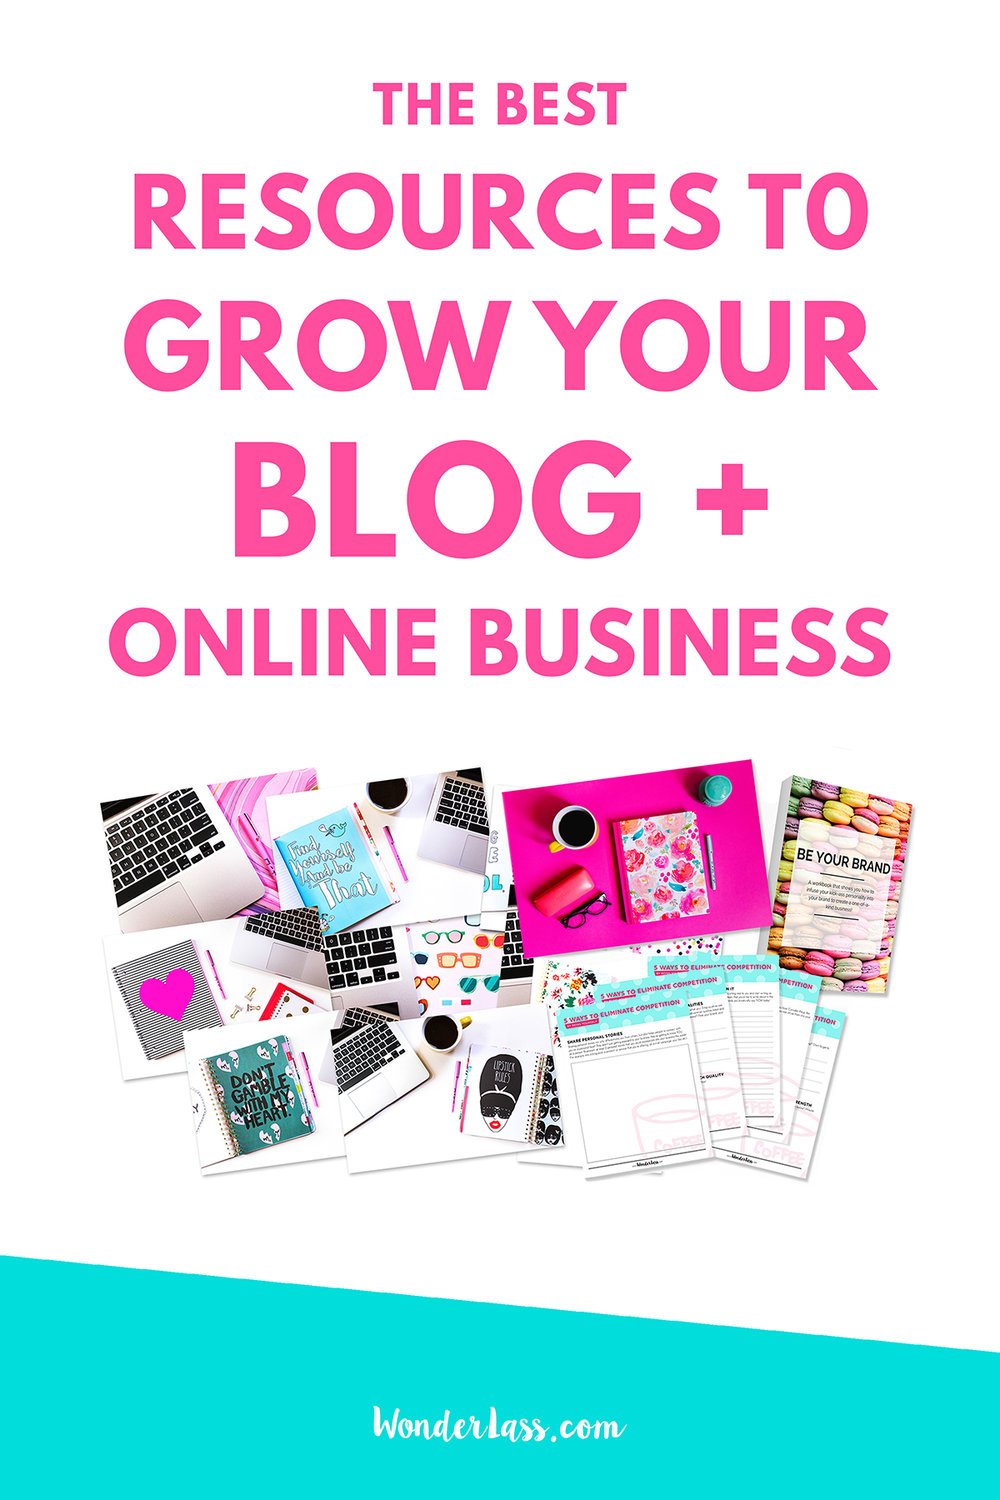 A juicy list of the BEST resources to grow your blog and business!